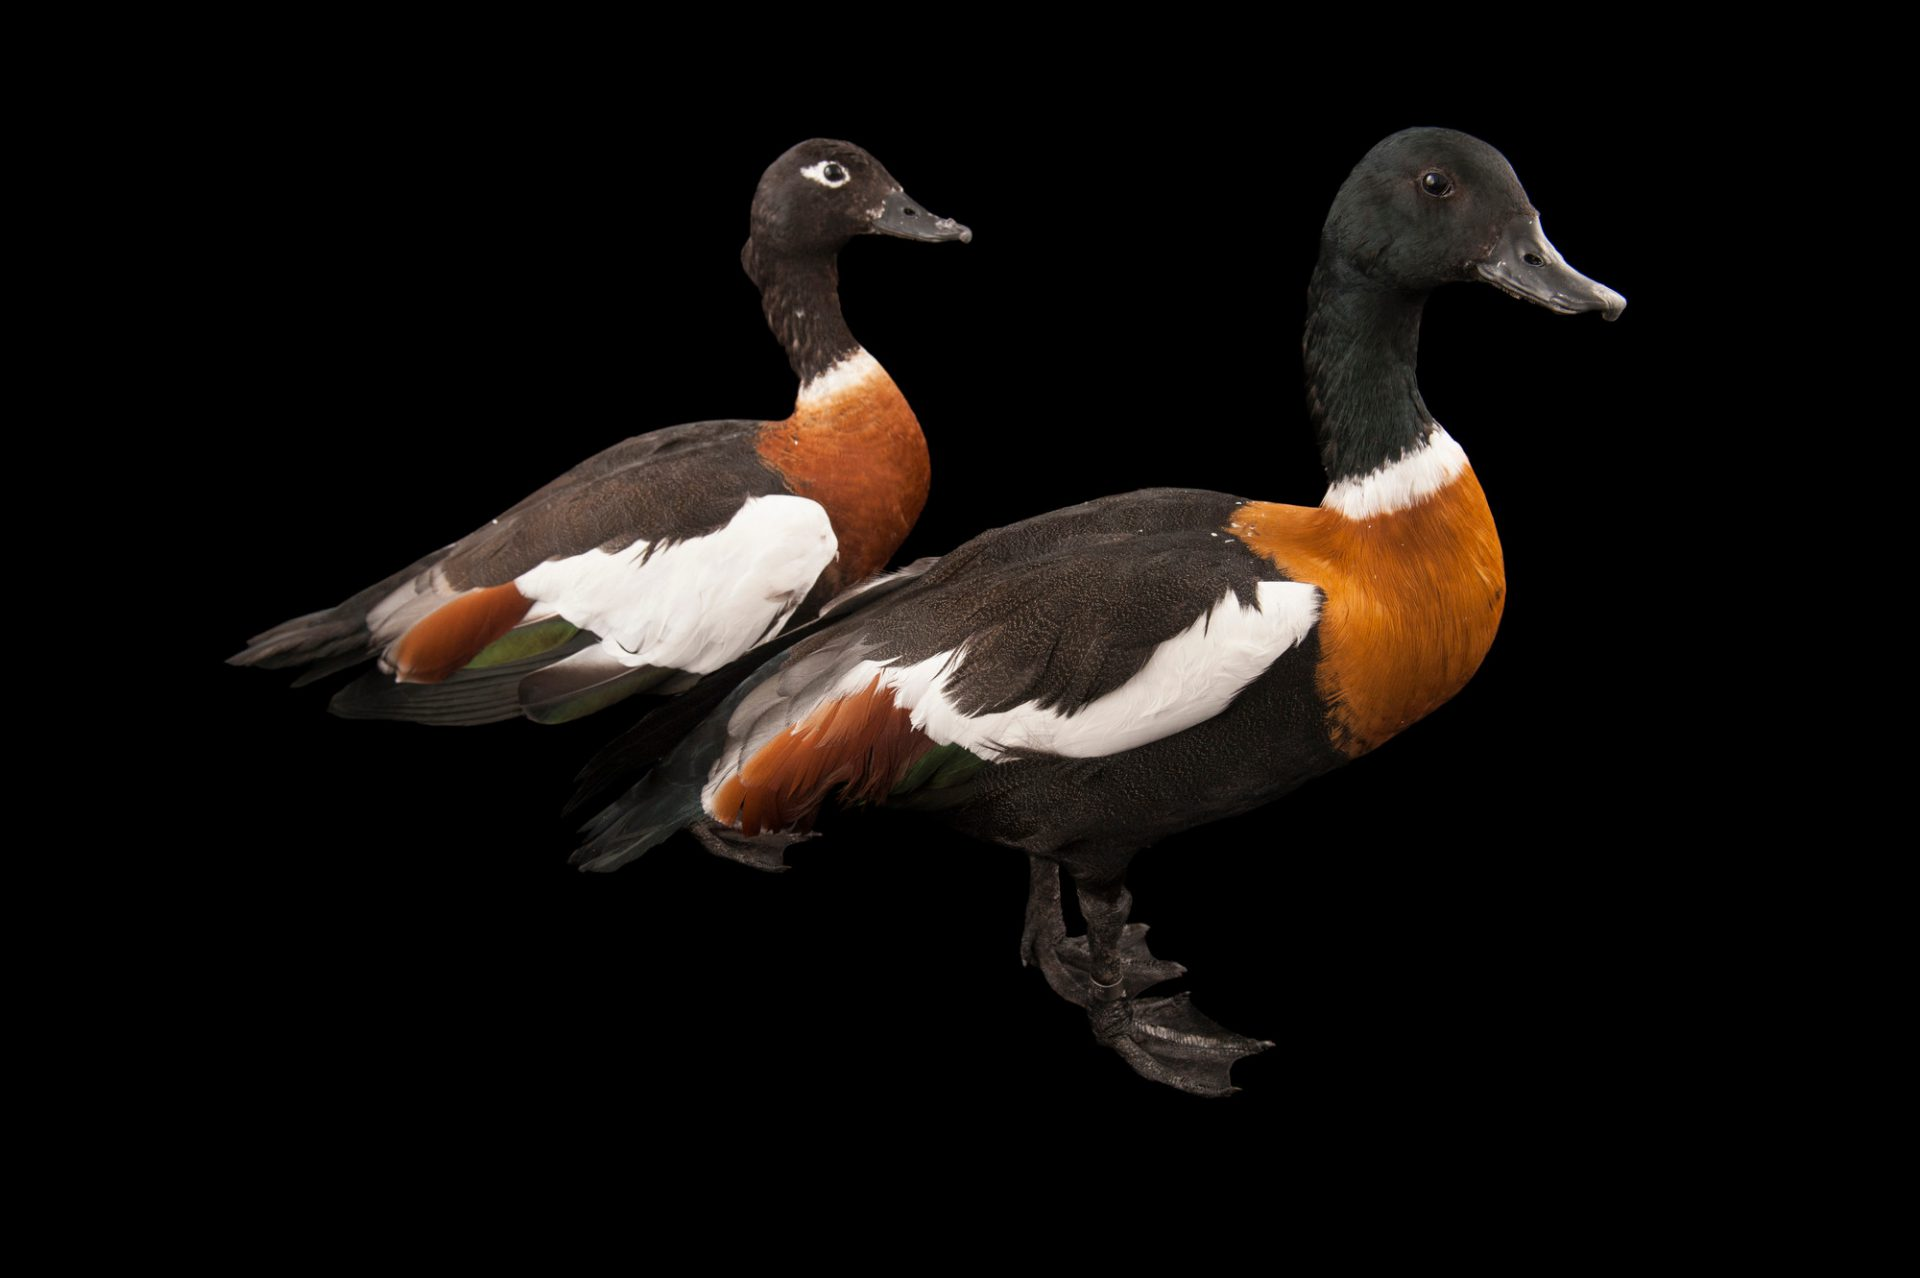 Australian shelducks (Tadorna tadornoides) at the Kansas City Zoo.